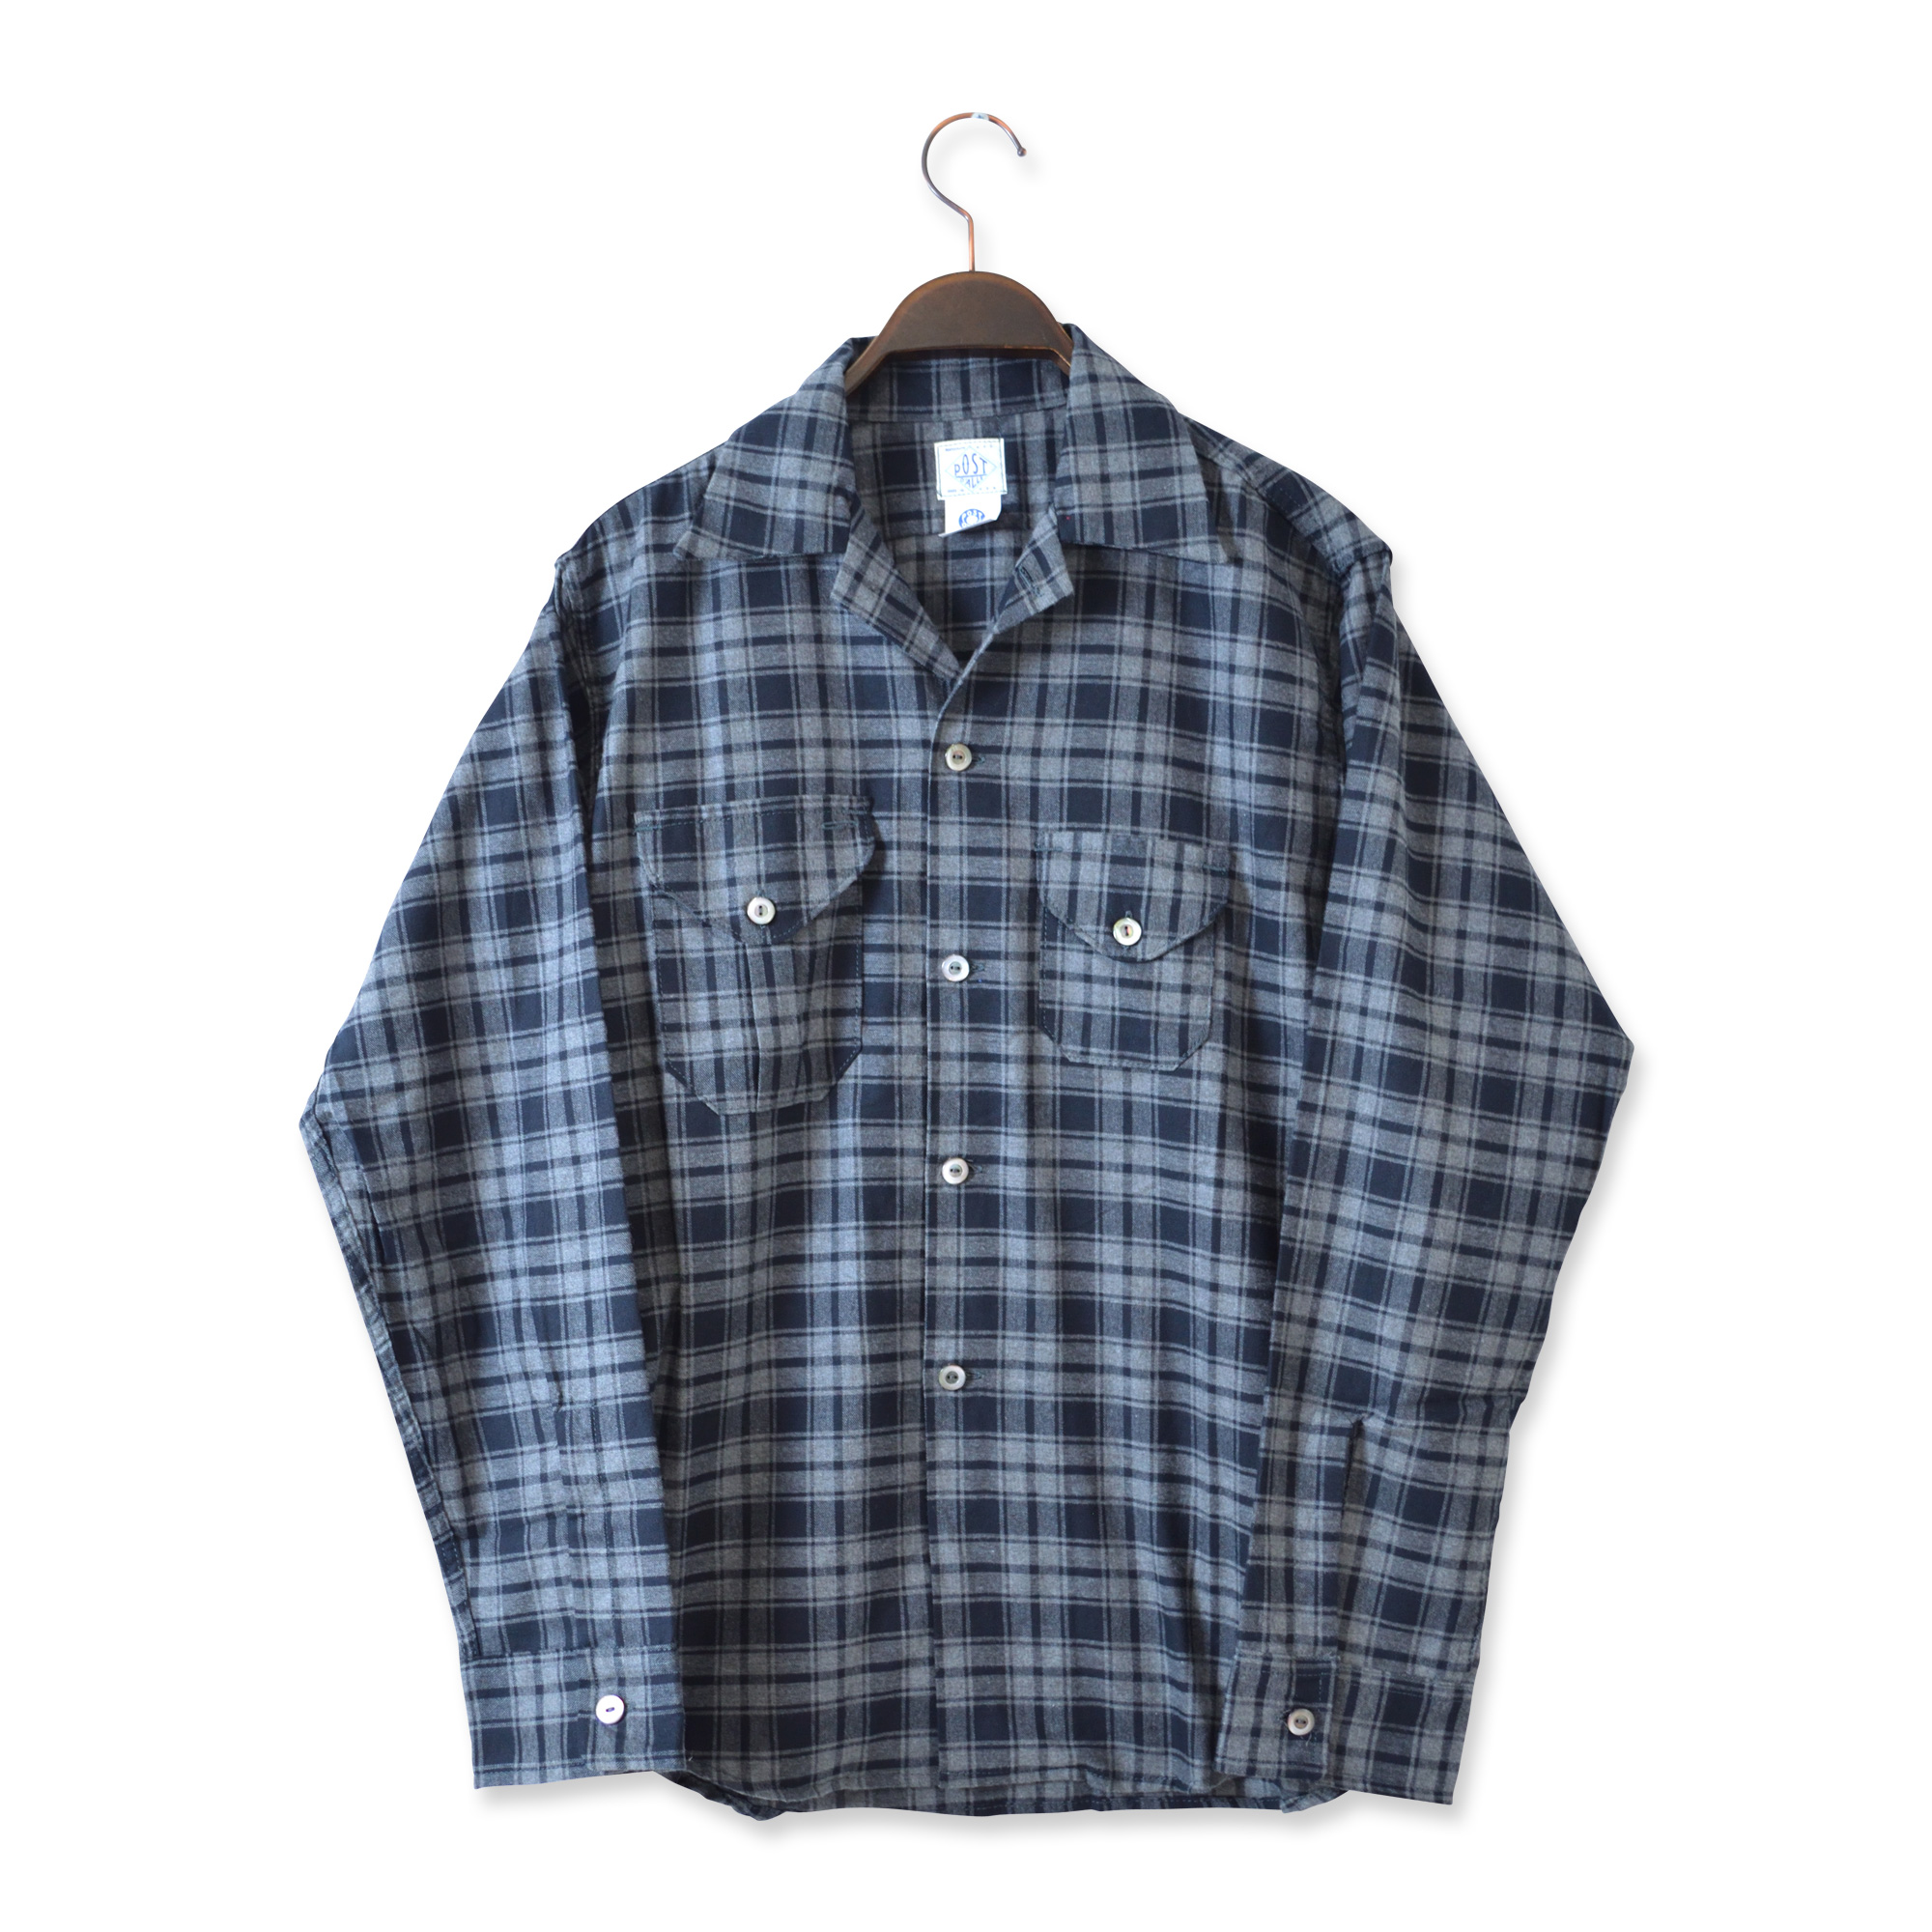 POST OVERALLS(ポストオーバーオールズ)/2214-FP1 E-Z CRUZ SHIRT PLAID FLANNEL